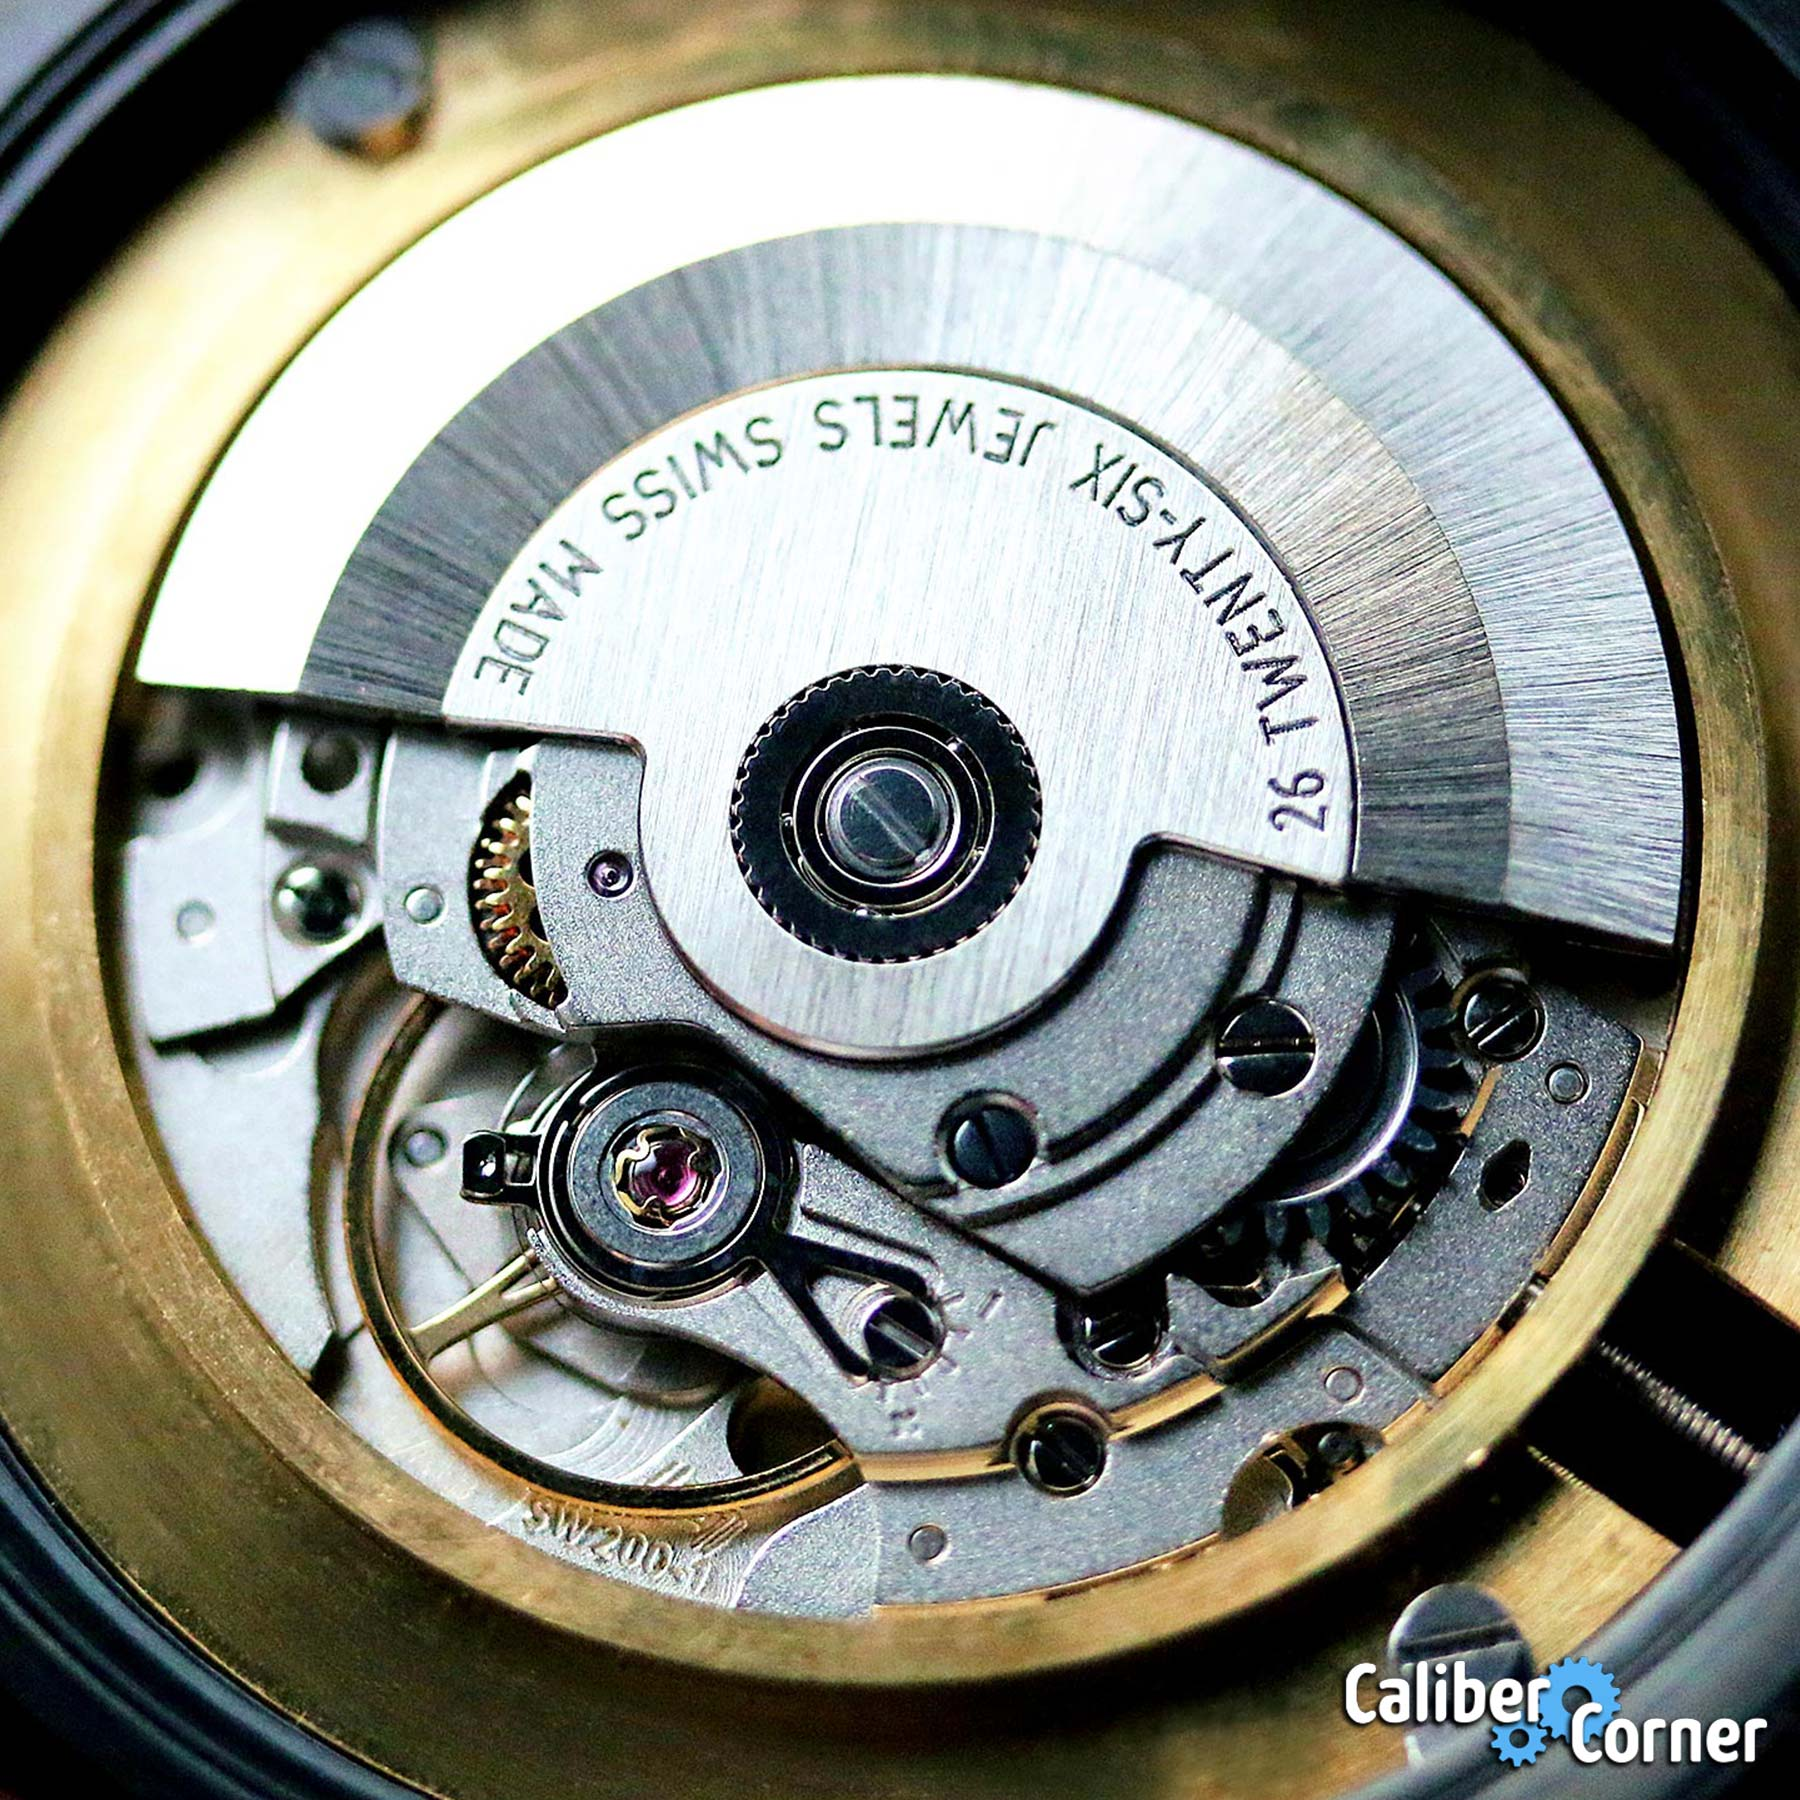 Sellita Caliber Sw200 1 Movement